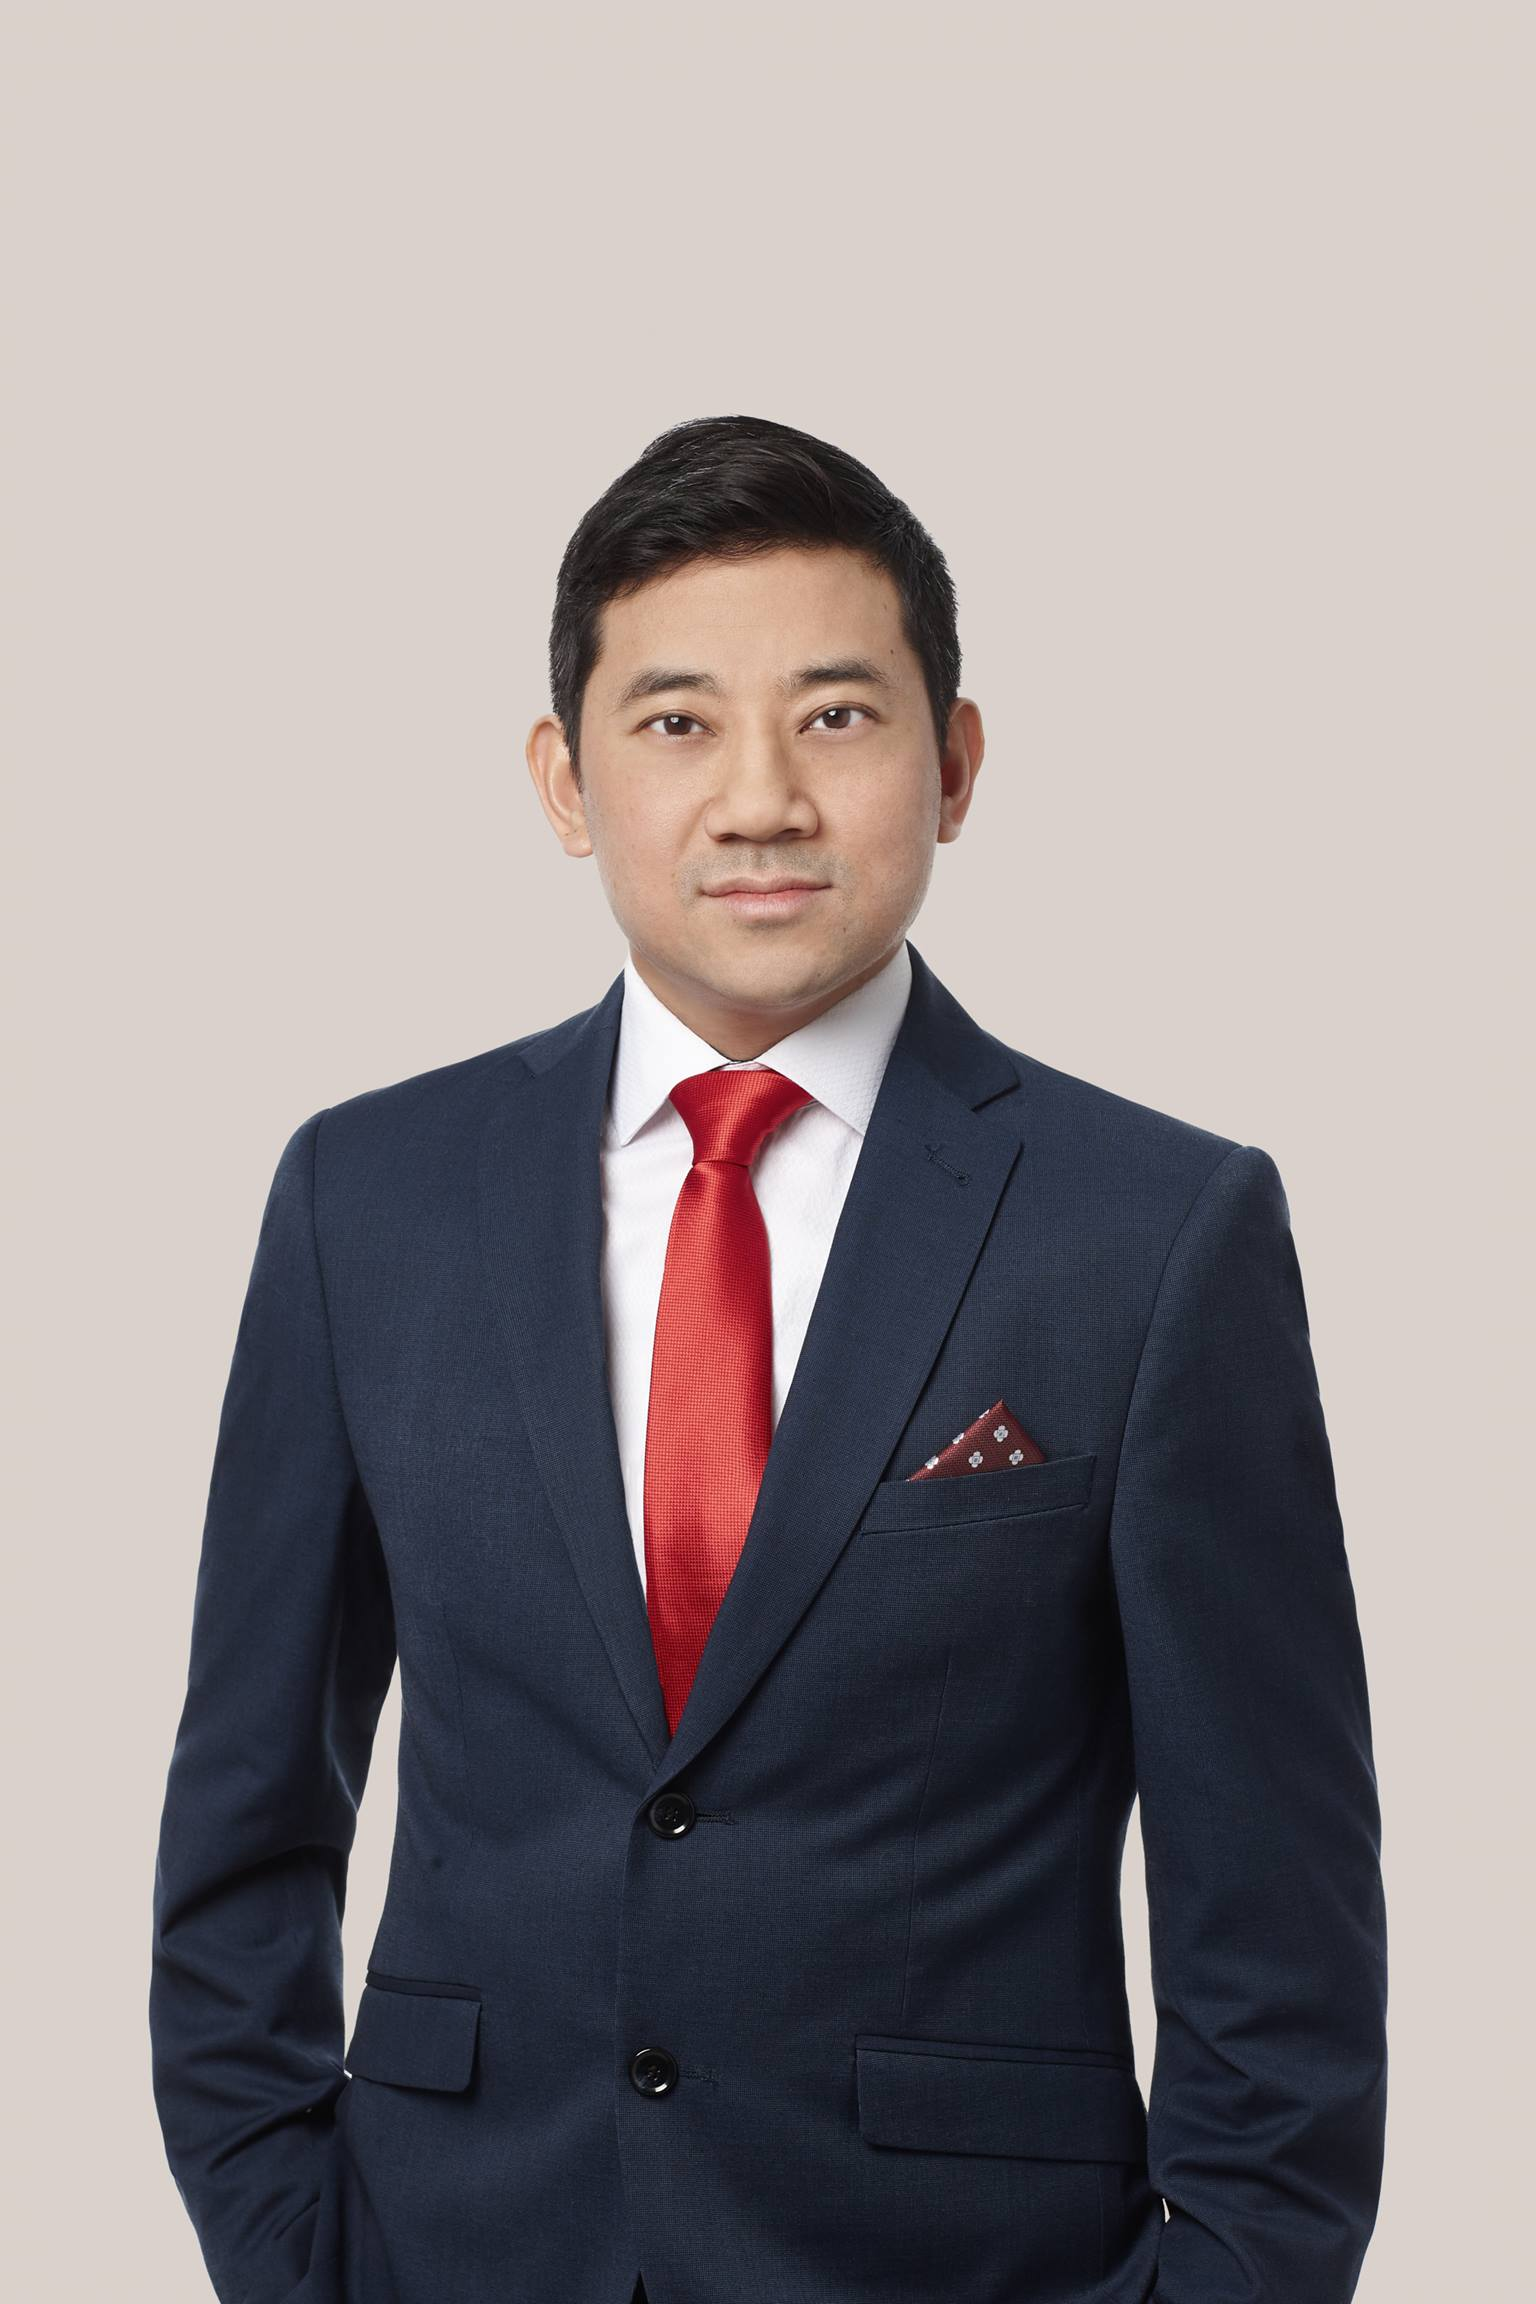 Ponora Ang | Product Liability, Real Estate Litigation Lawyer in Montréal